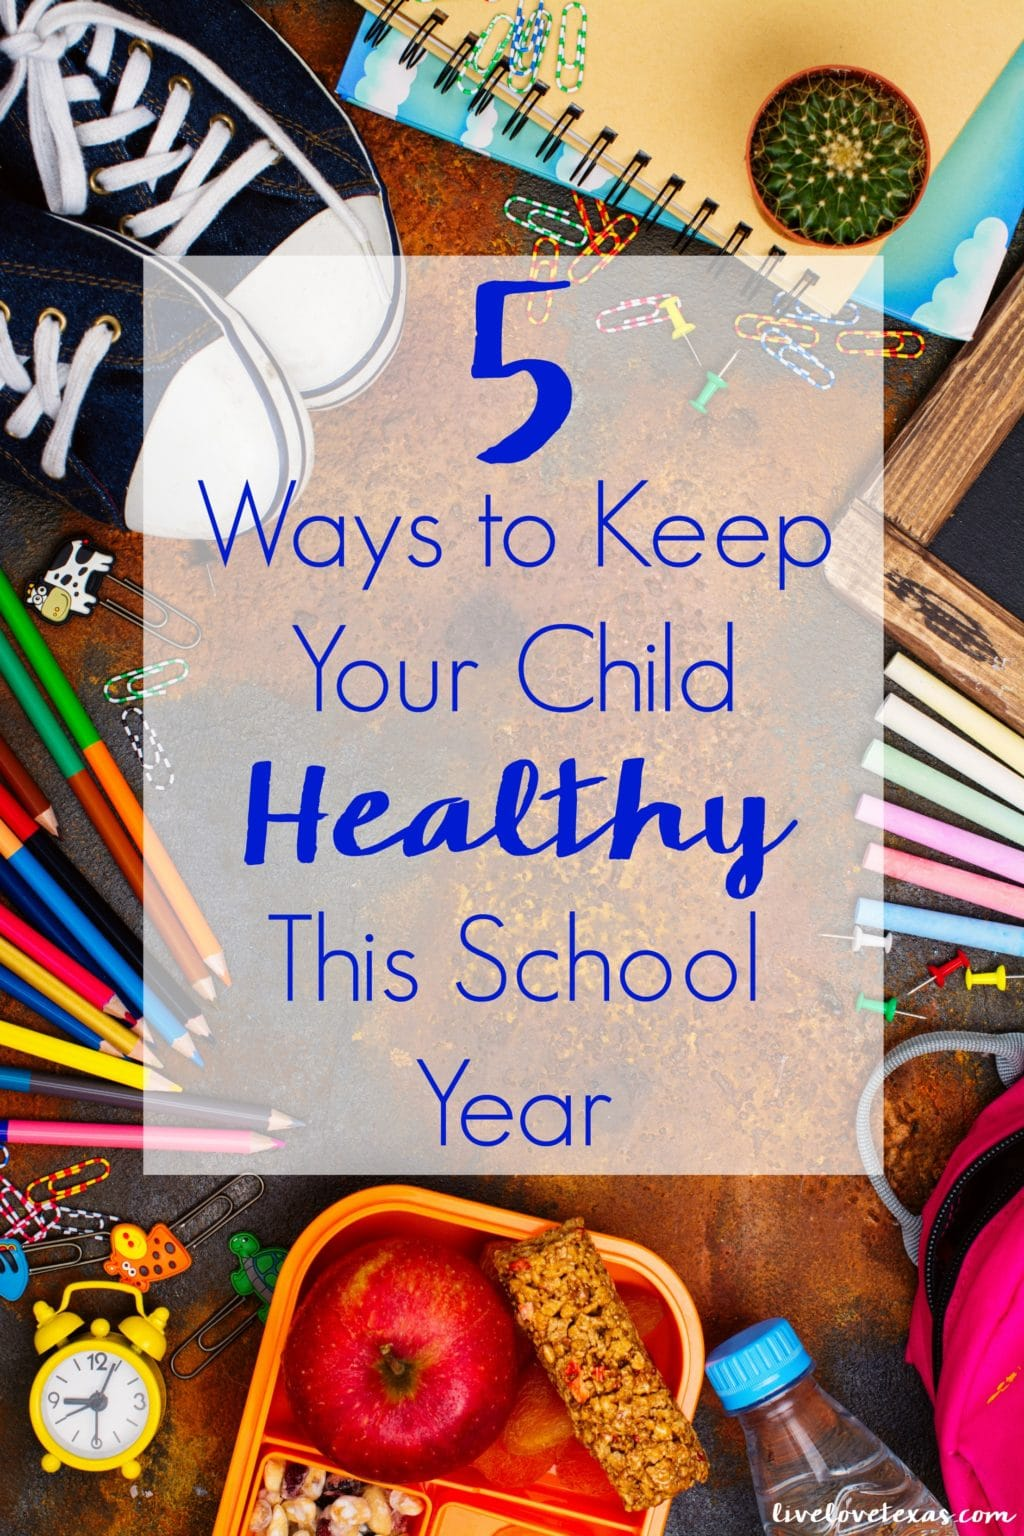 Avoid absences and unnecessary sickies with these 5 Ways to Keep Your Child Healthy This School Year. Preemptive moves to keep germs away!